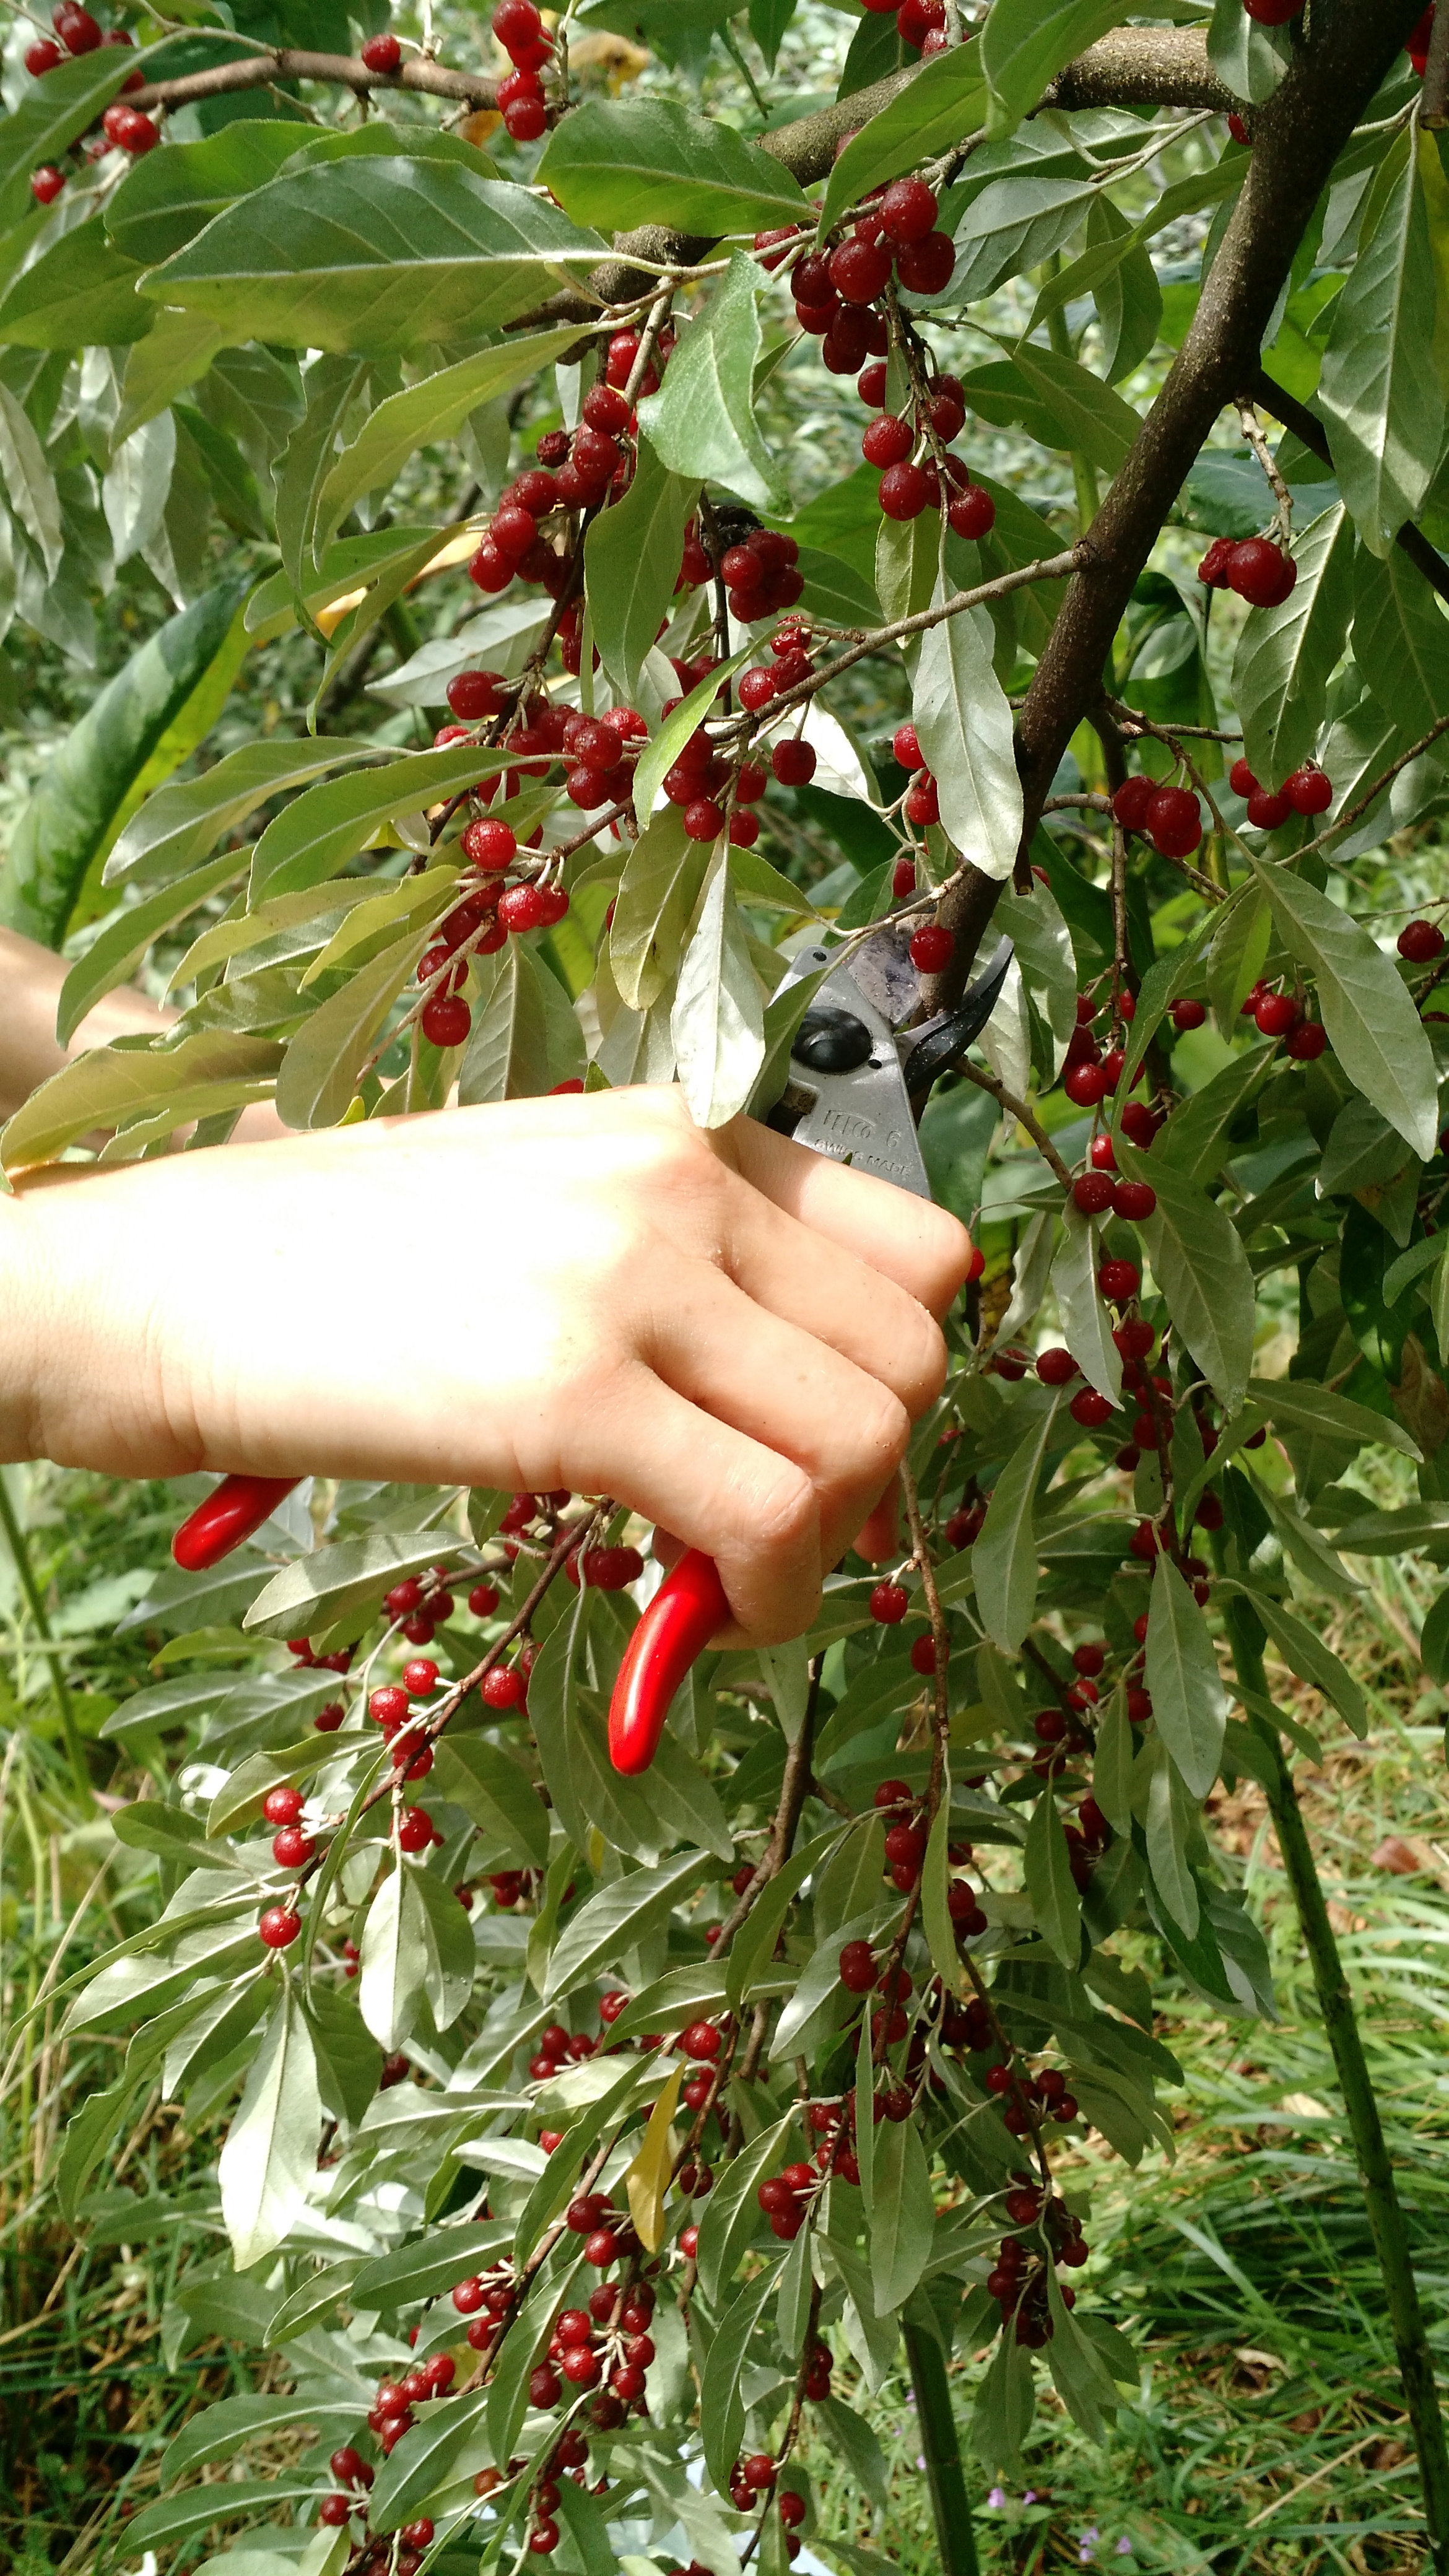 Pruning the berry laden branches.